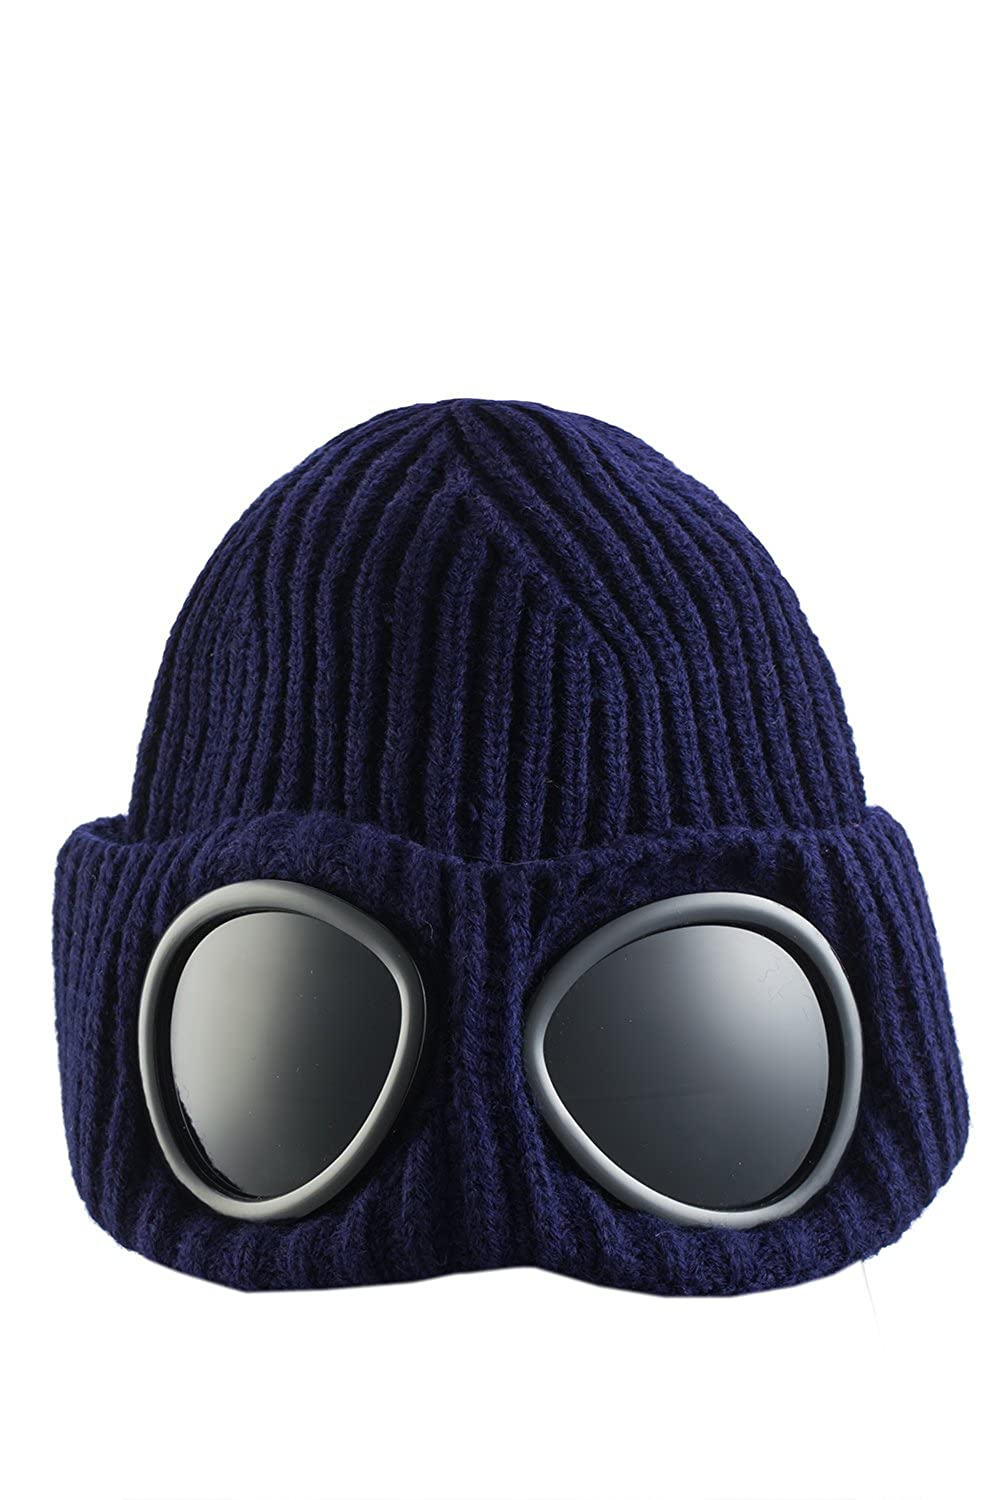 ASVP Shop® Mens Goggle Beanie Knitted Woolly Winter Chunky Beanie Hat